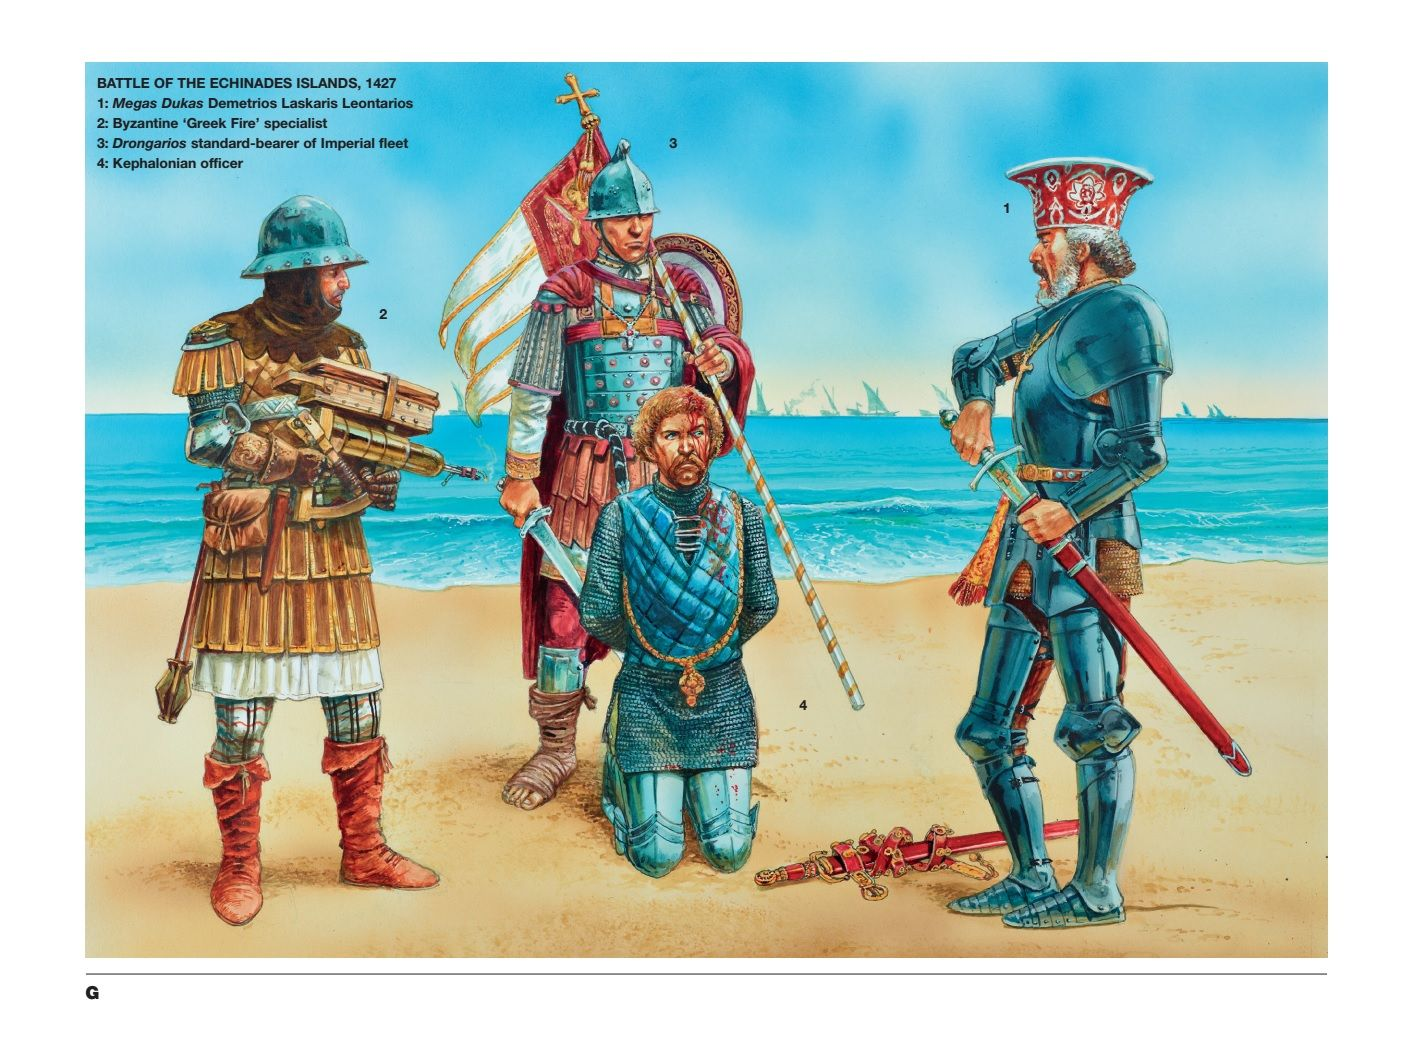 a history of the byzantine empire in the middle ages Study flashcards on 6th grade ss byzantine empire and middle ages at cramcom quickly memorize the terms, phrases and much more cramcom makes it easy to get the grade you want.